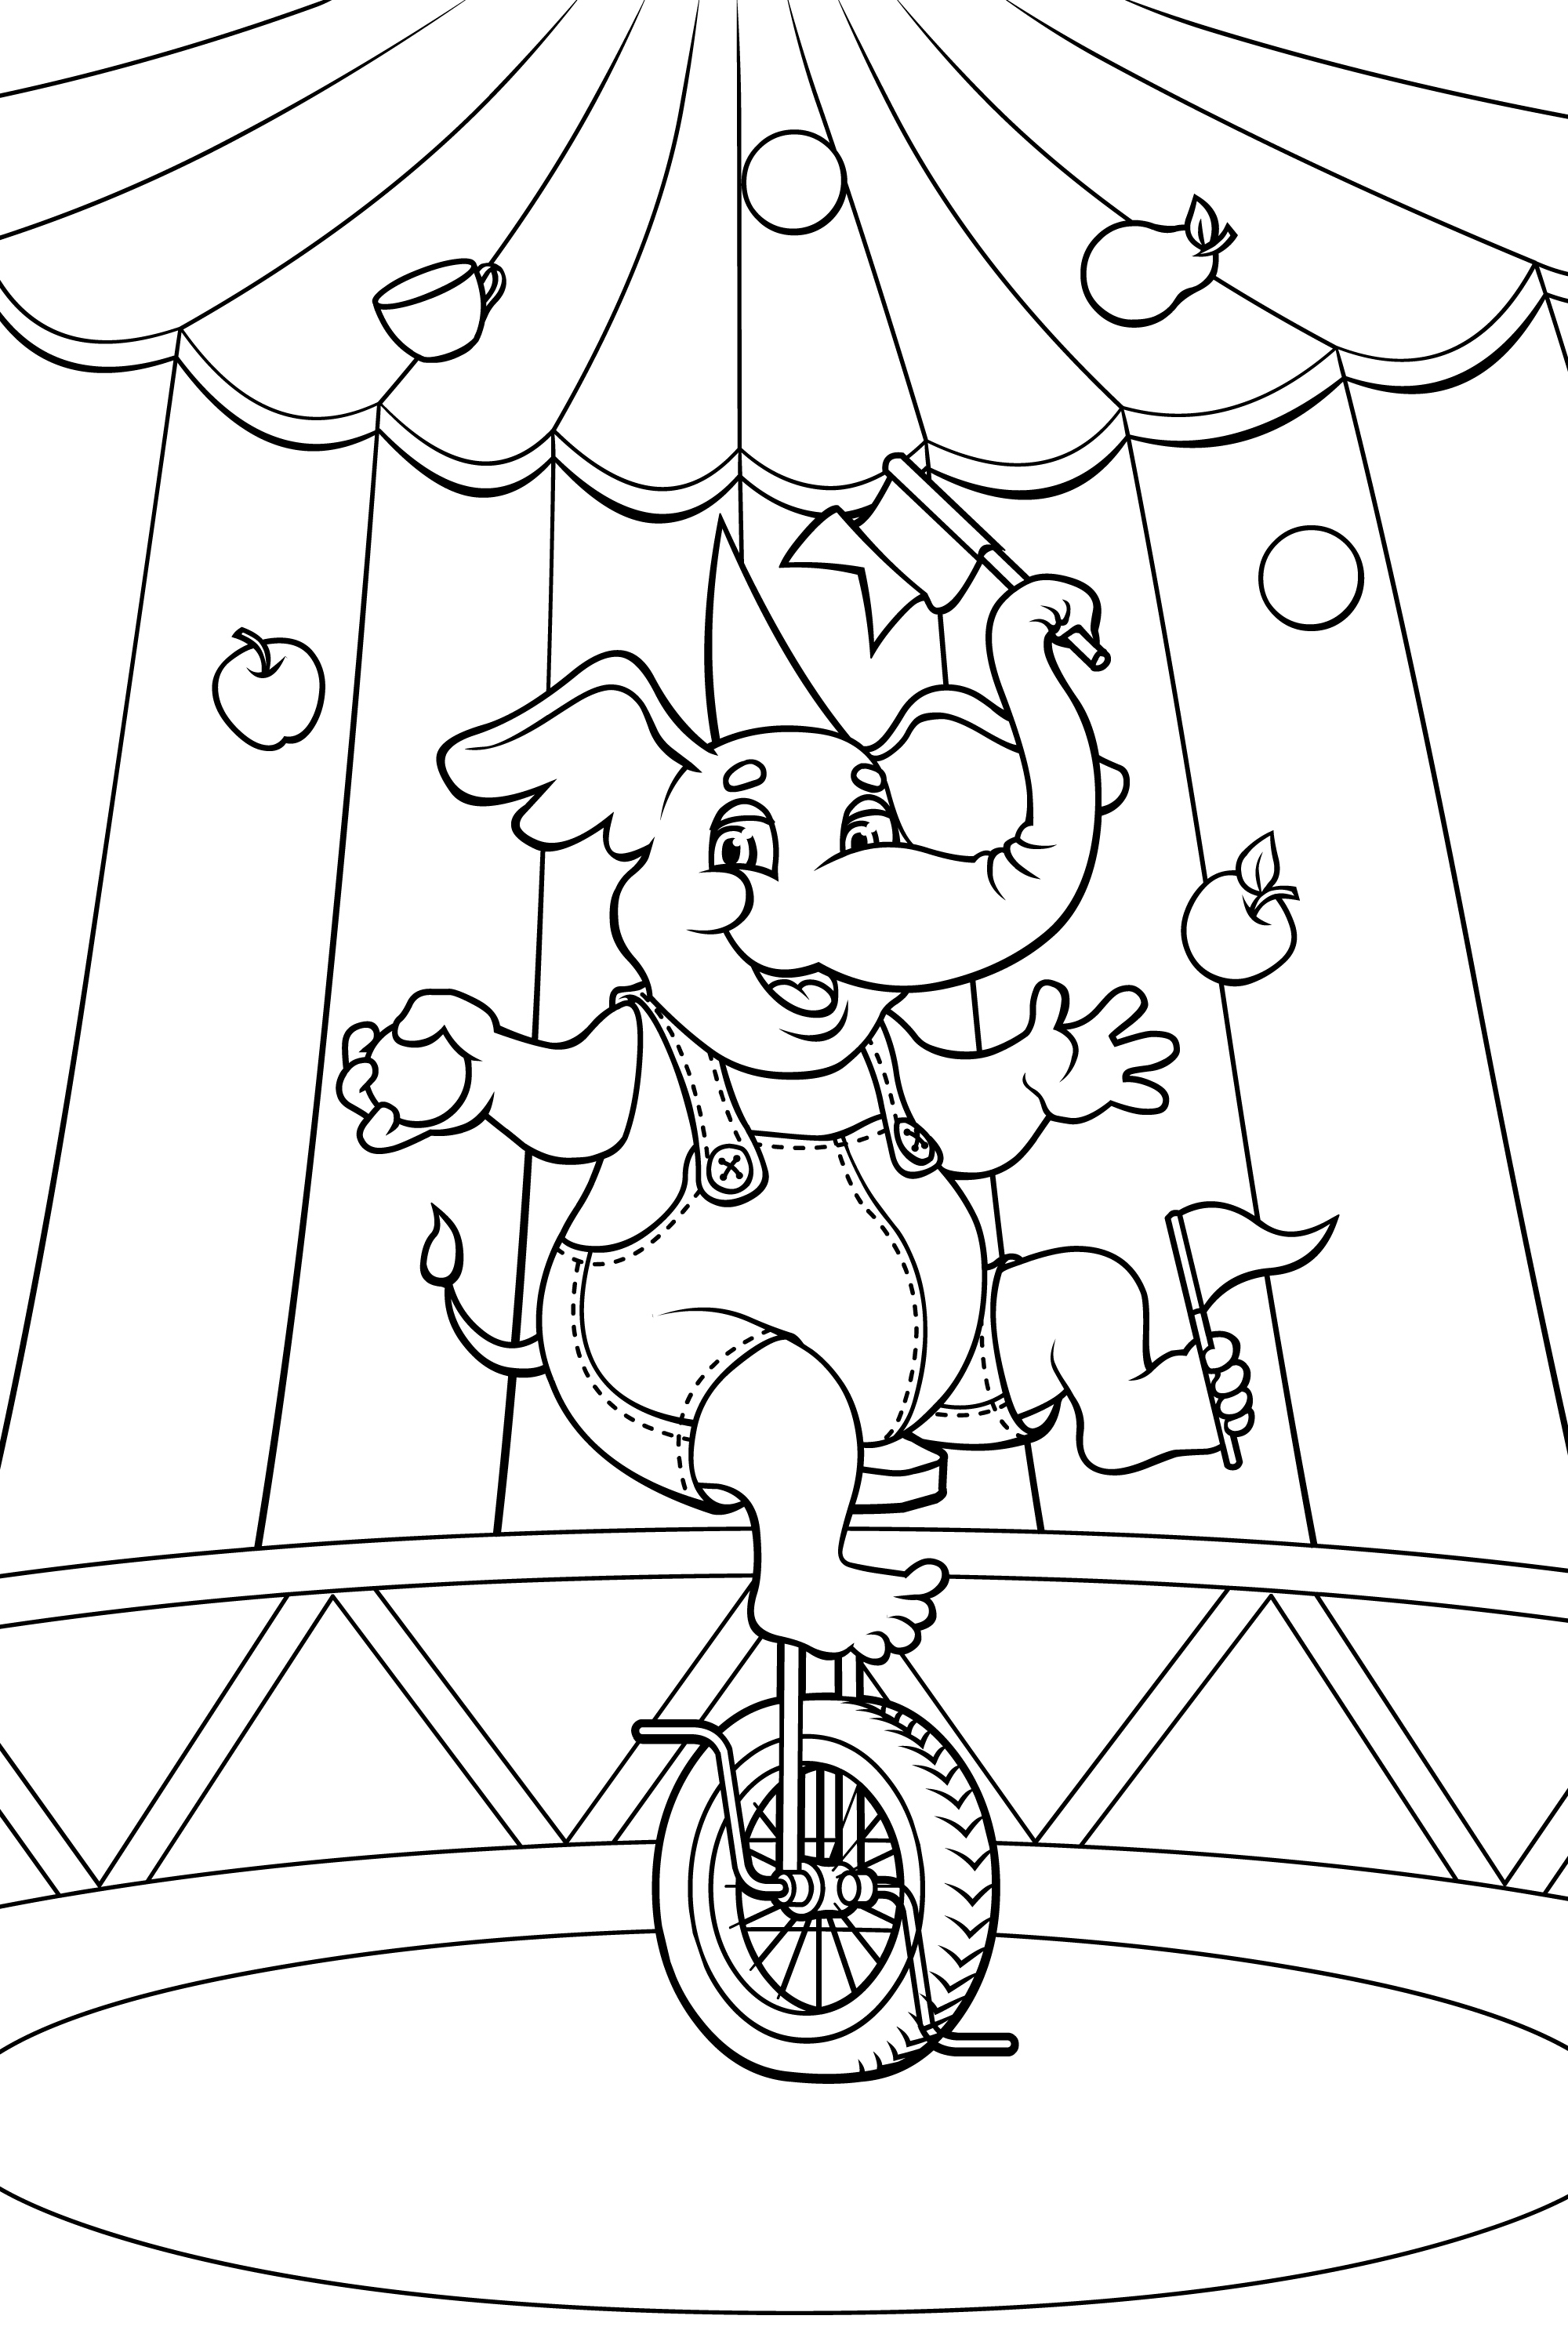 Displaying 19> Images For - Circus Tigers Drawings...